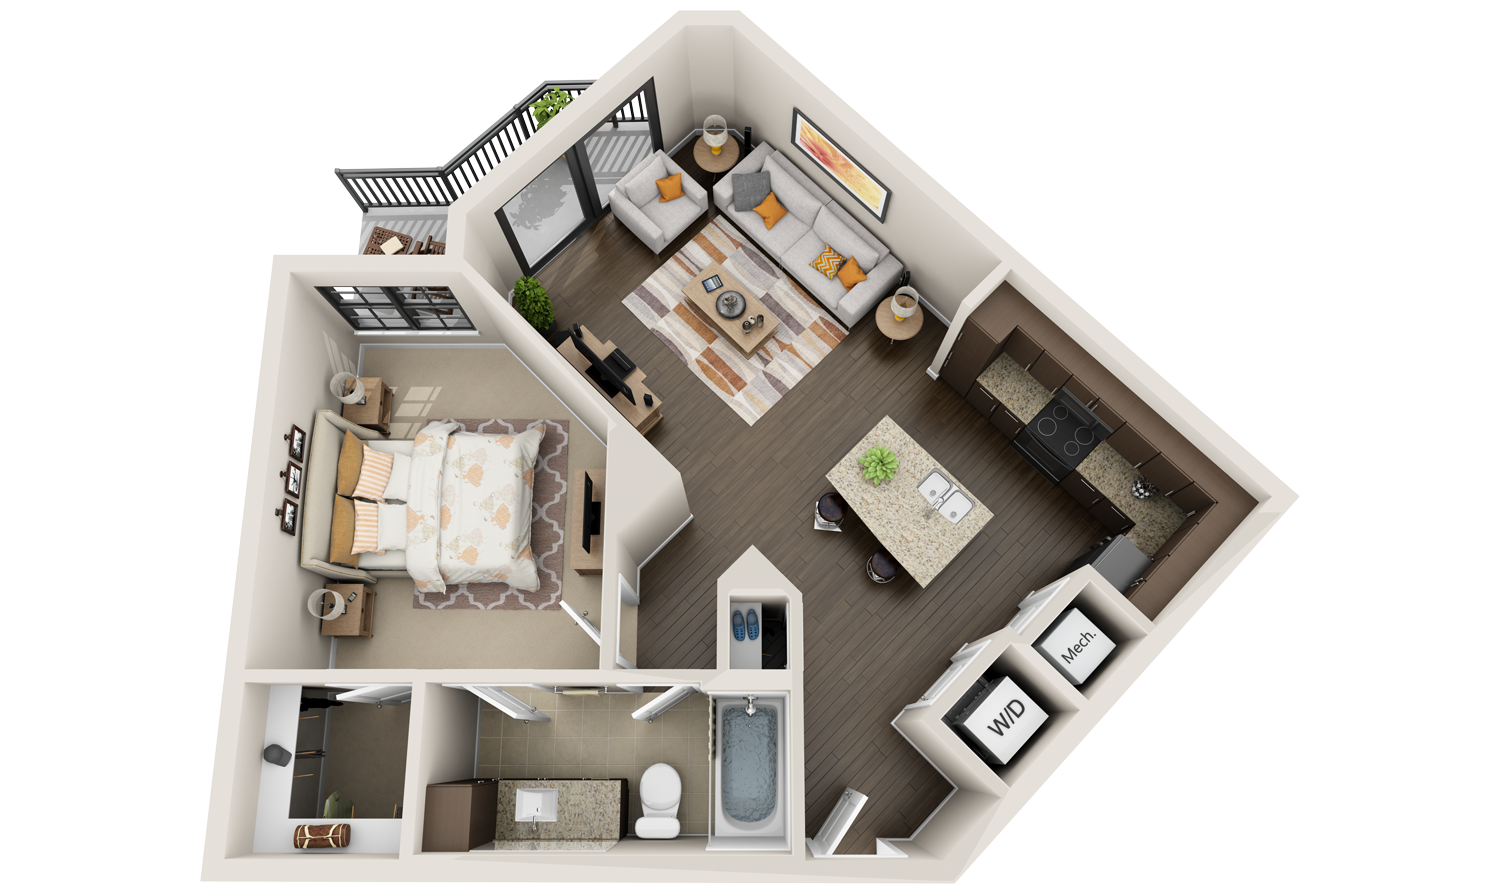 Best 3d floor plans tours for apartments for 3d floor design